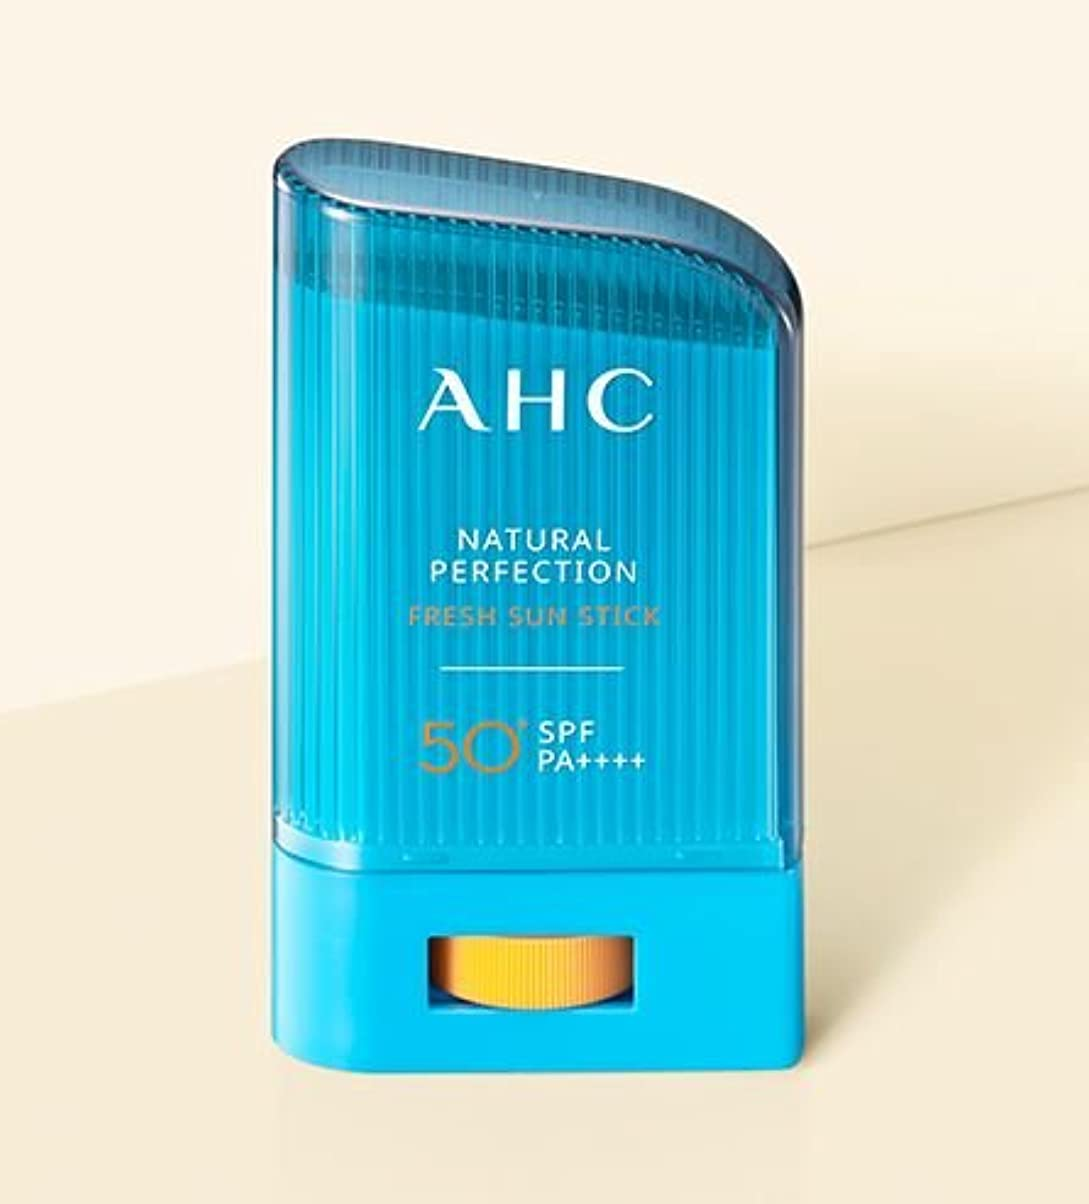 麺非互換直感AHC Natural perfection fresh sun stick (22g) [並行輸入品]